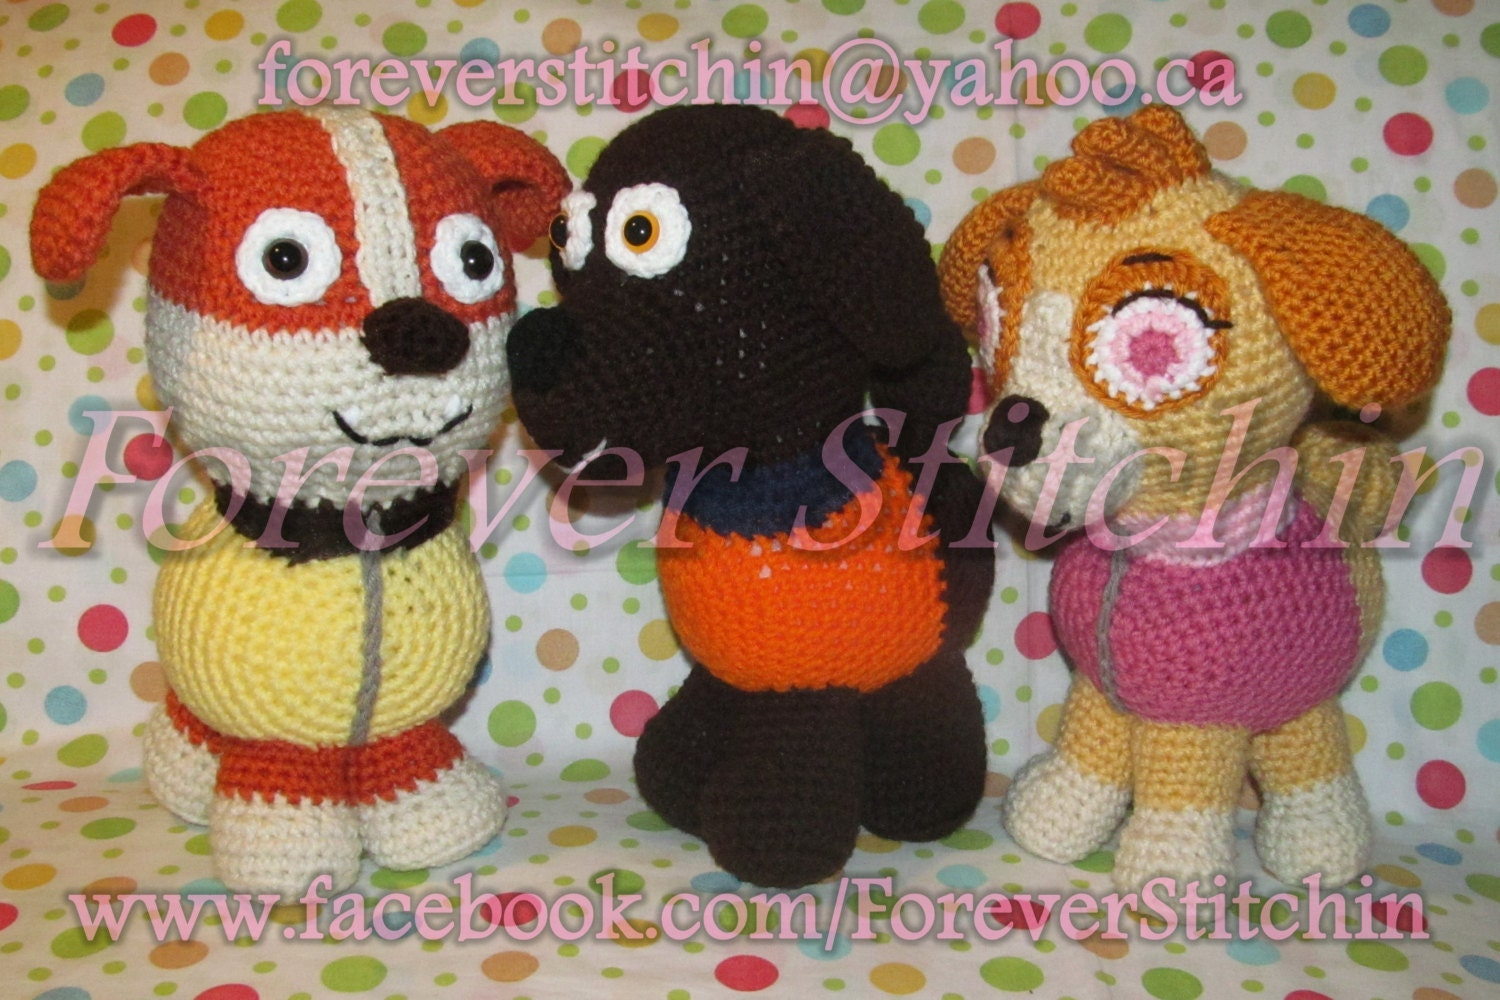 Crochet Patterns Paw Patrol : Paw Patrol 3 Pup Crochet Pattern Set by Forever Stitchin - Rubble ...